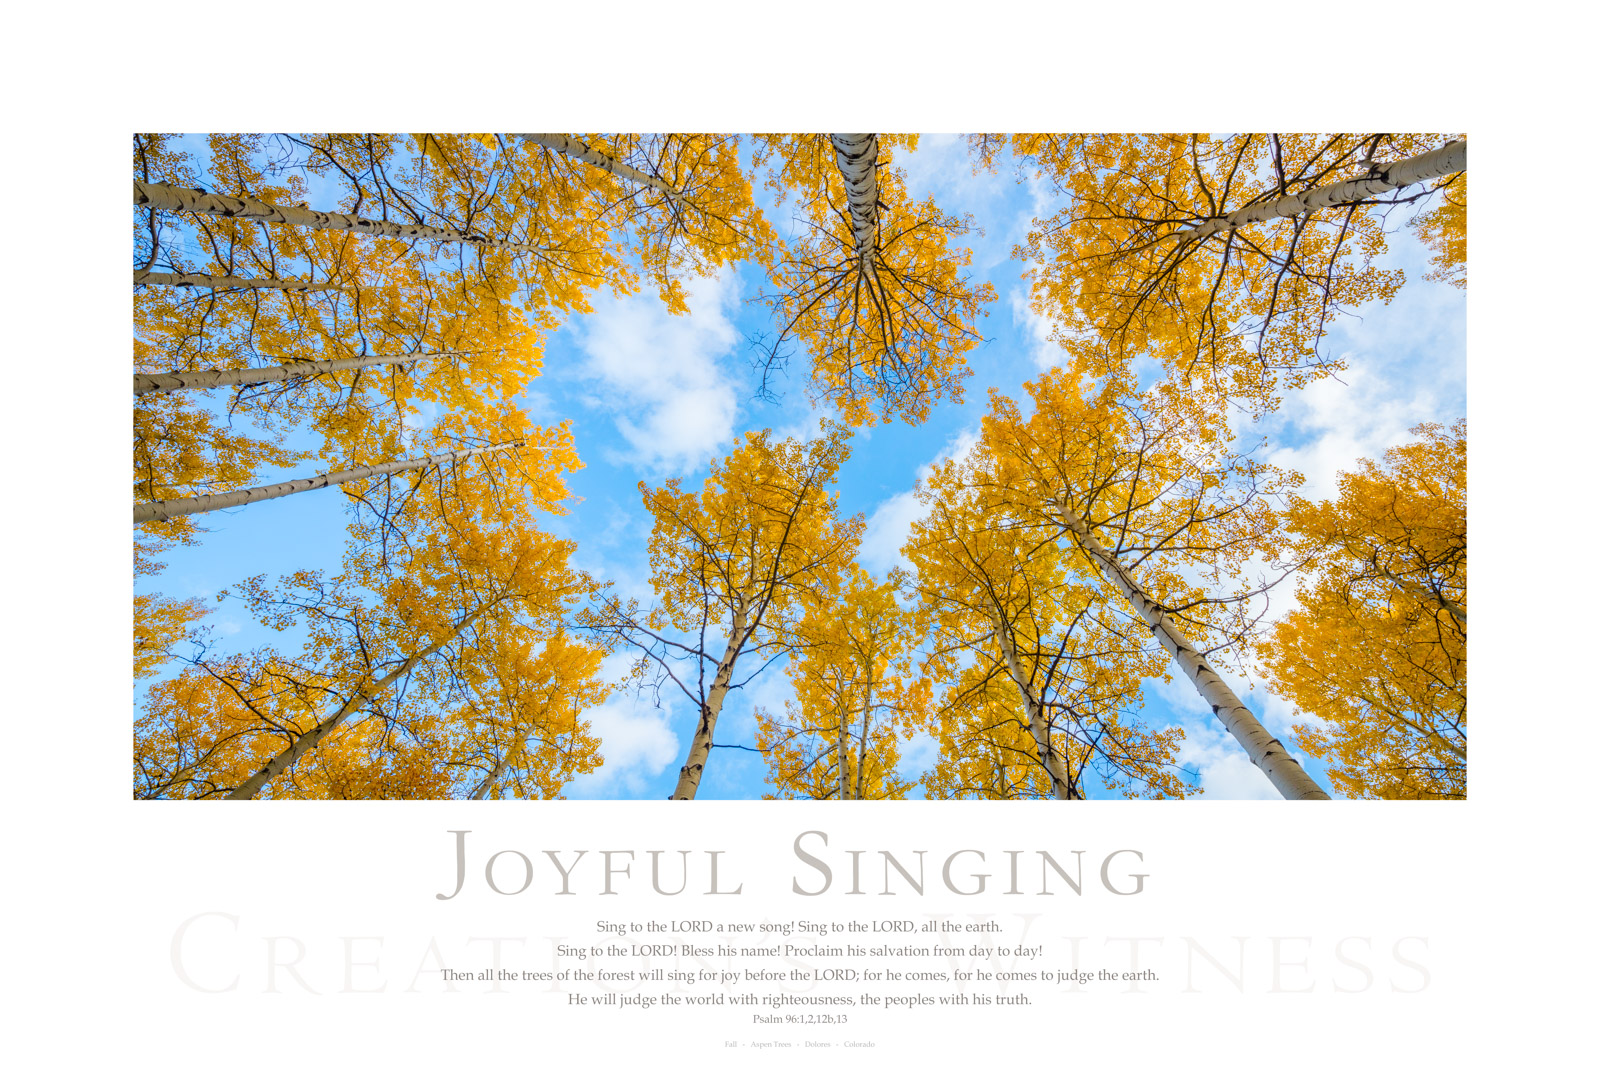 Sing to the LORD a new song! Sing to the LORD, all the earth. Sing to the LORD! Bless his name! Proclaim his salvation from day...